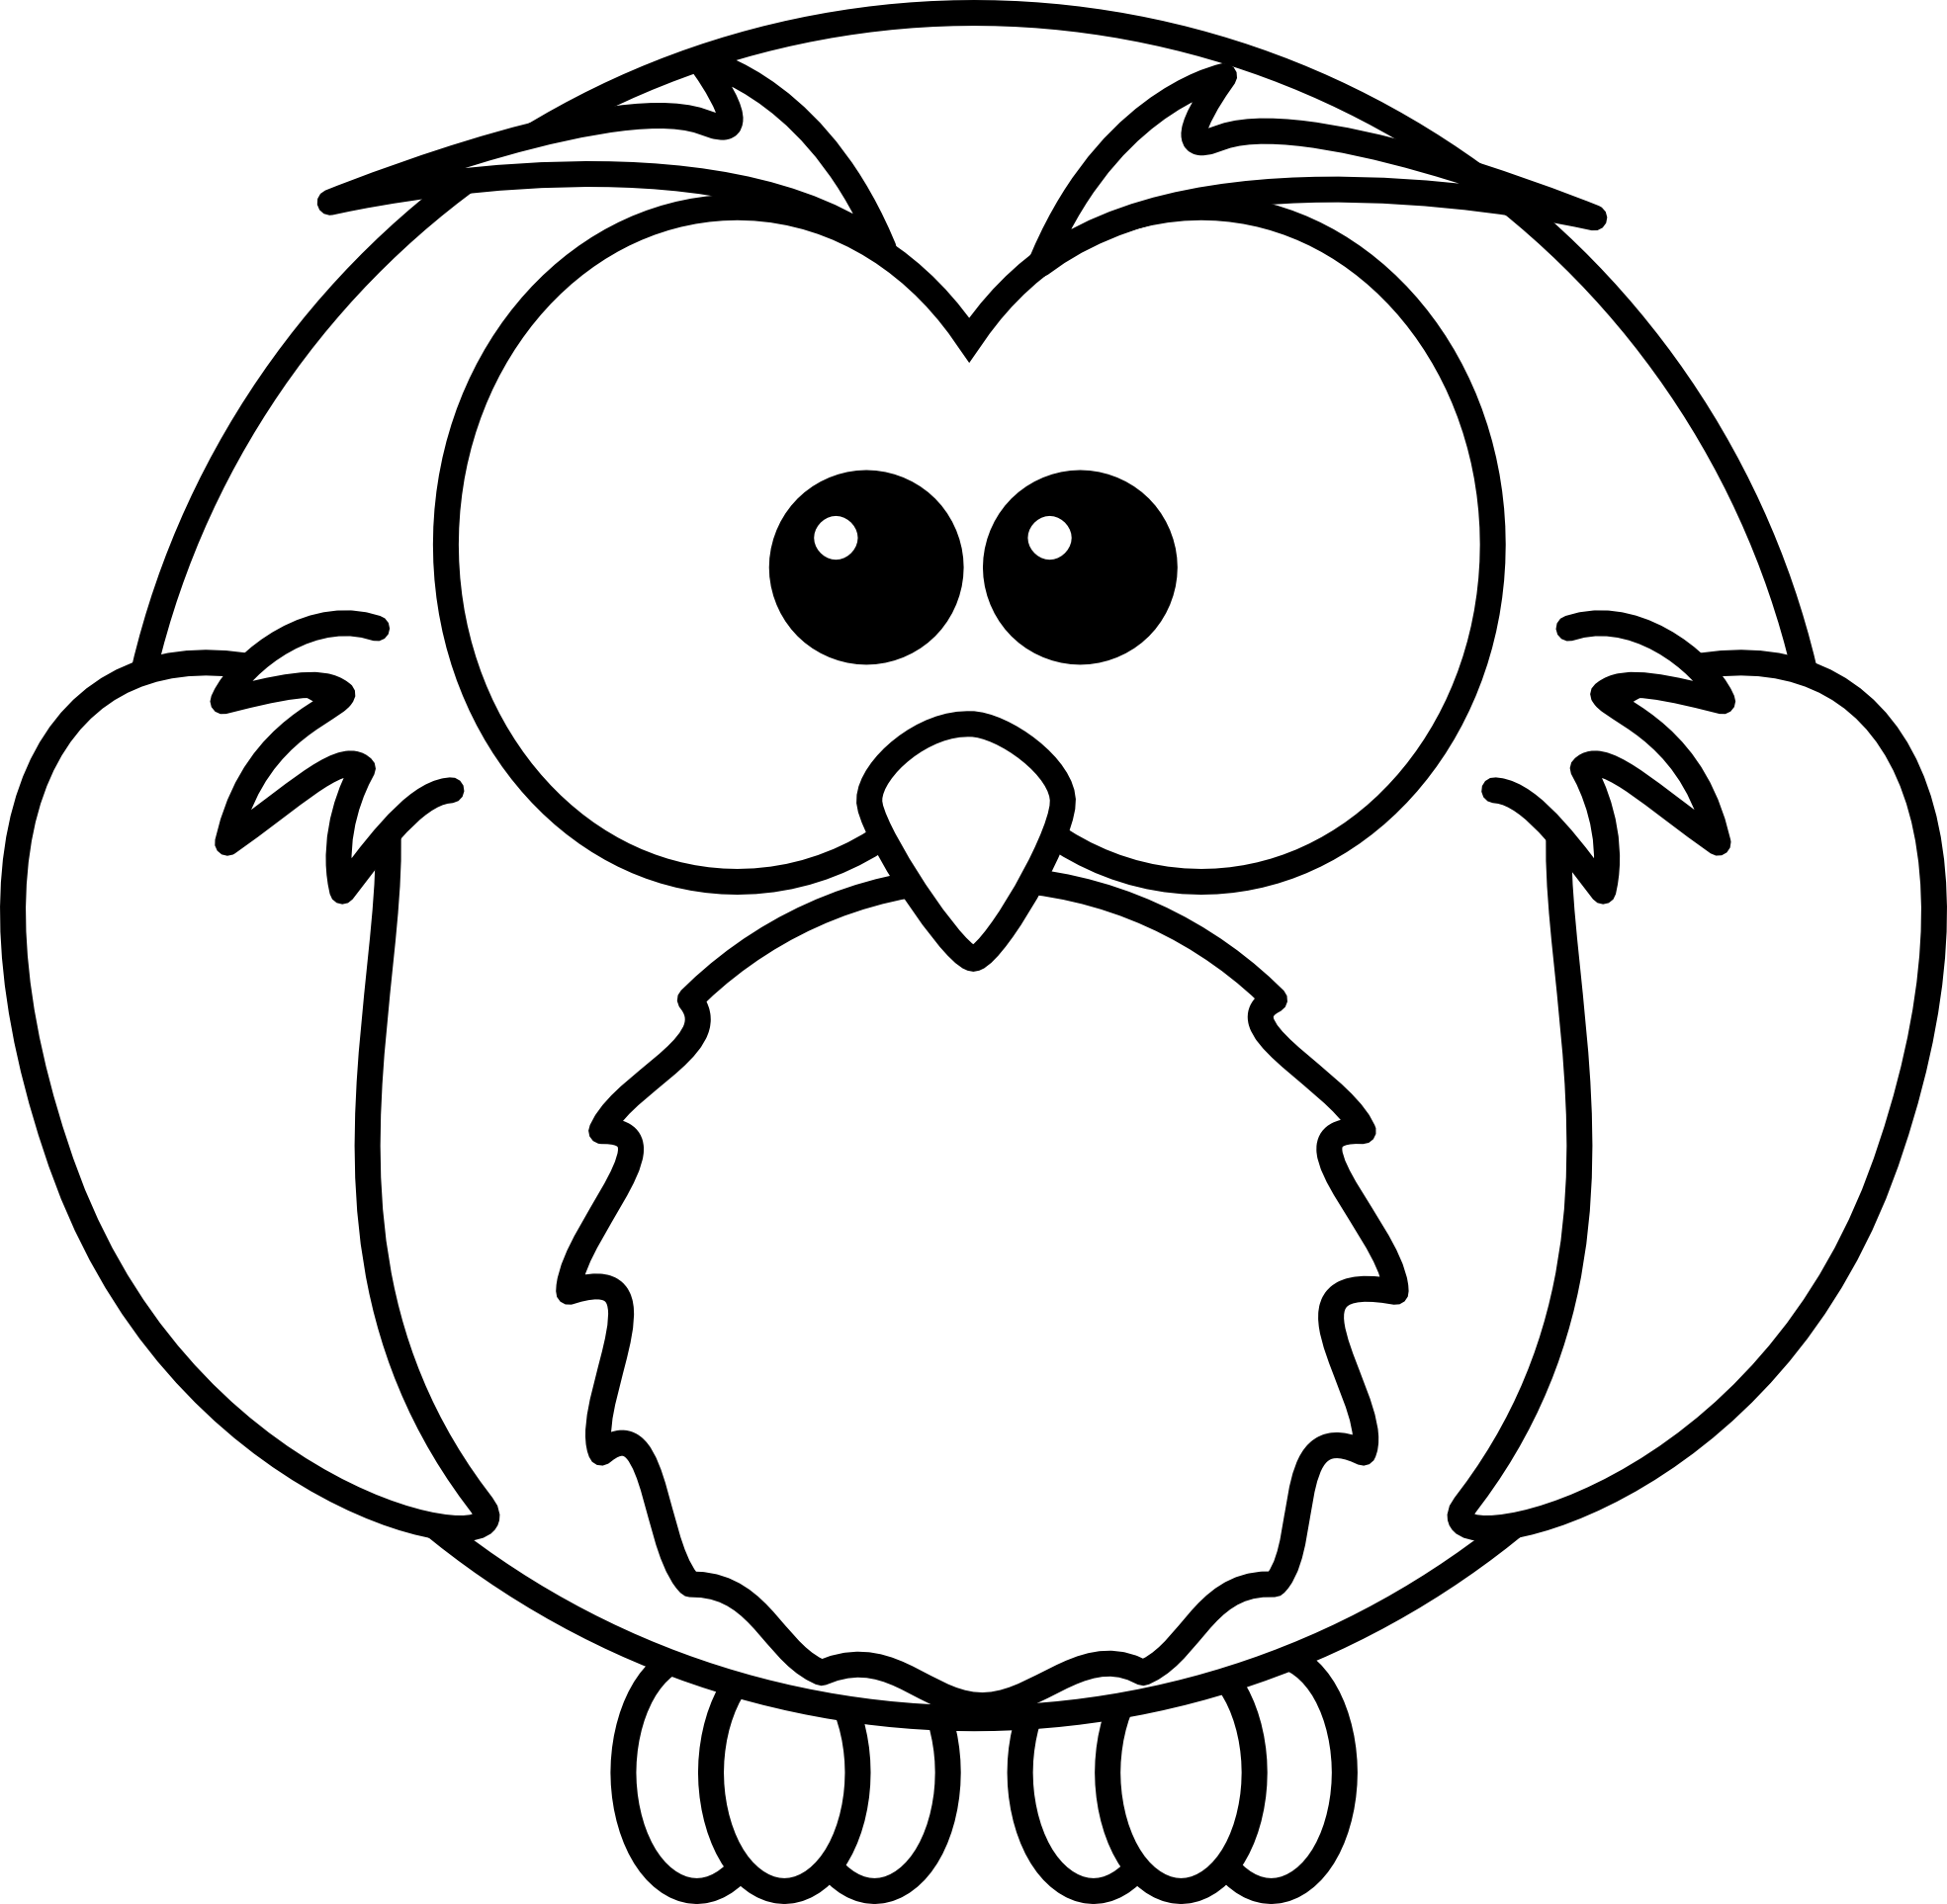 Cute Owl Black And White Clipart - Clipart Kid